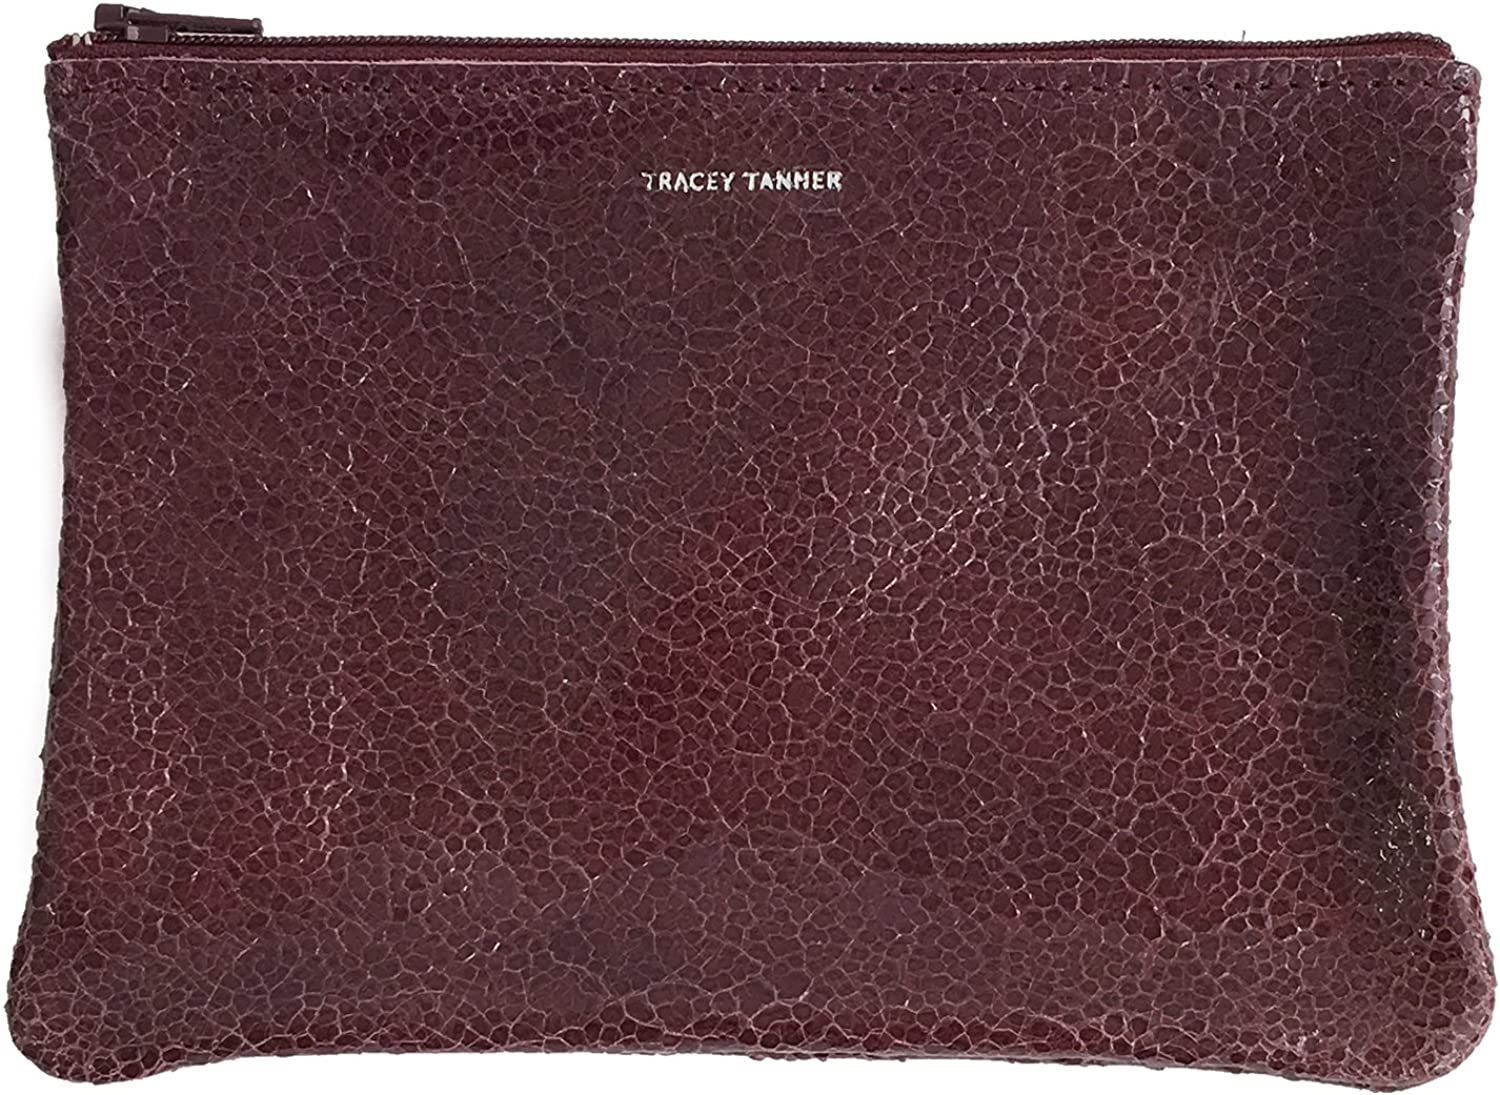 Tracey Tanner Zipper Top Pouch  Patent Wine Distress